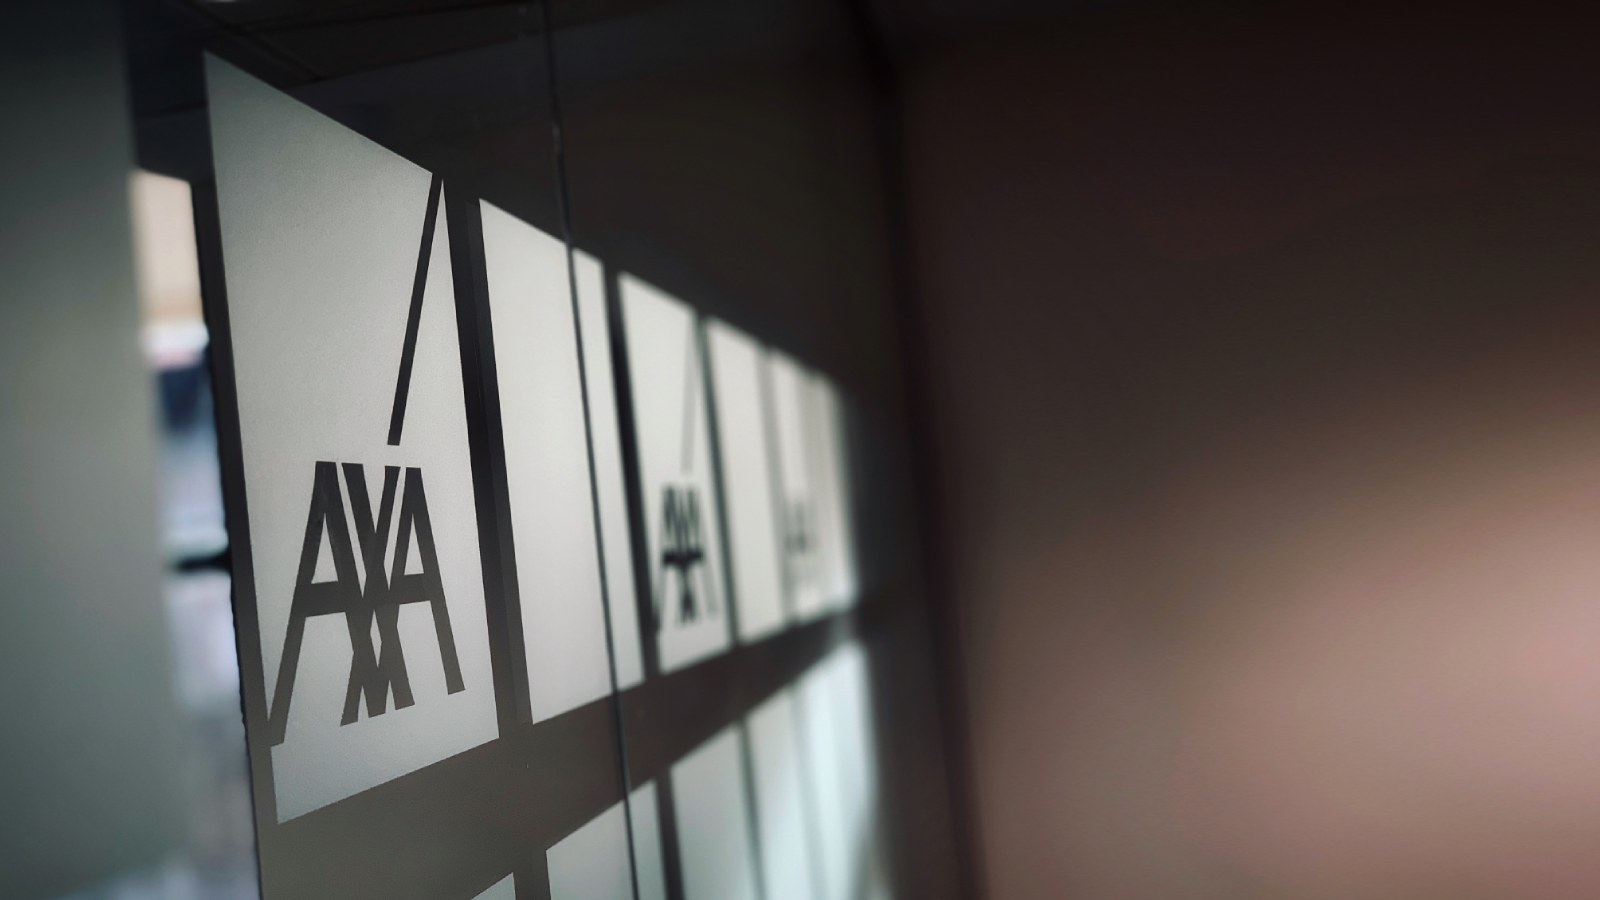 AXA logos etched on glass